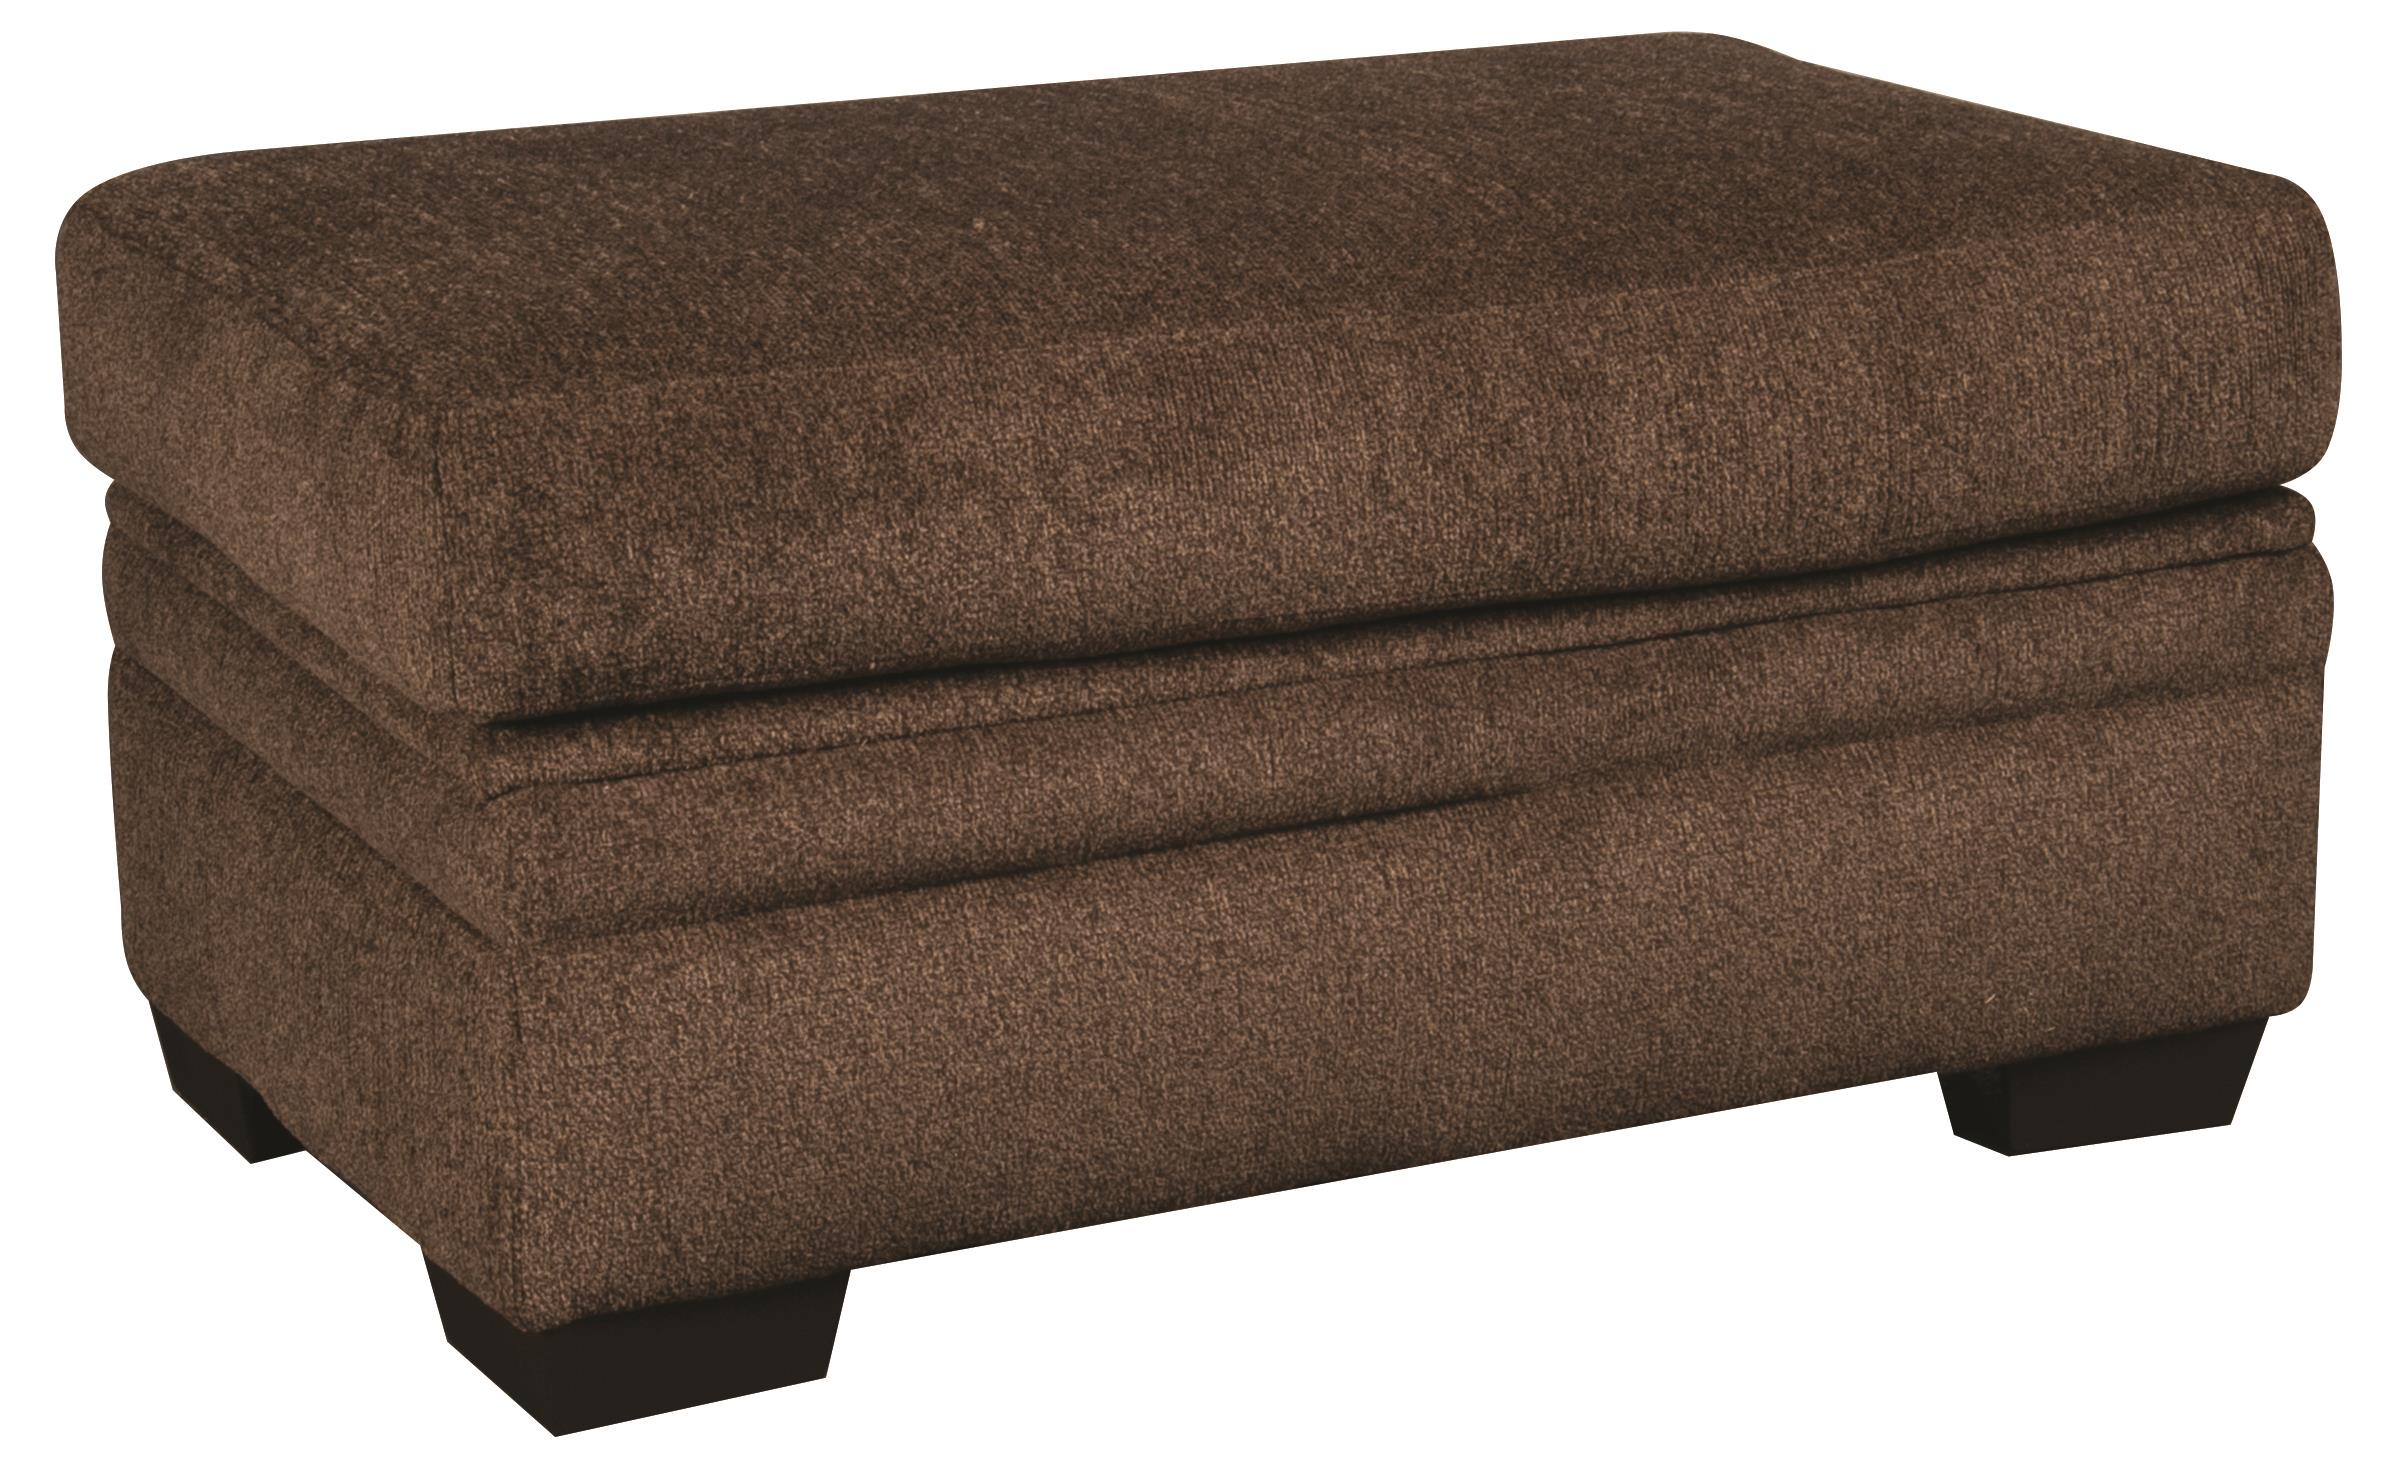 Morris Home Furnishings Walter Walter Cocktail Storage Ottoman - Item Number: 755528531